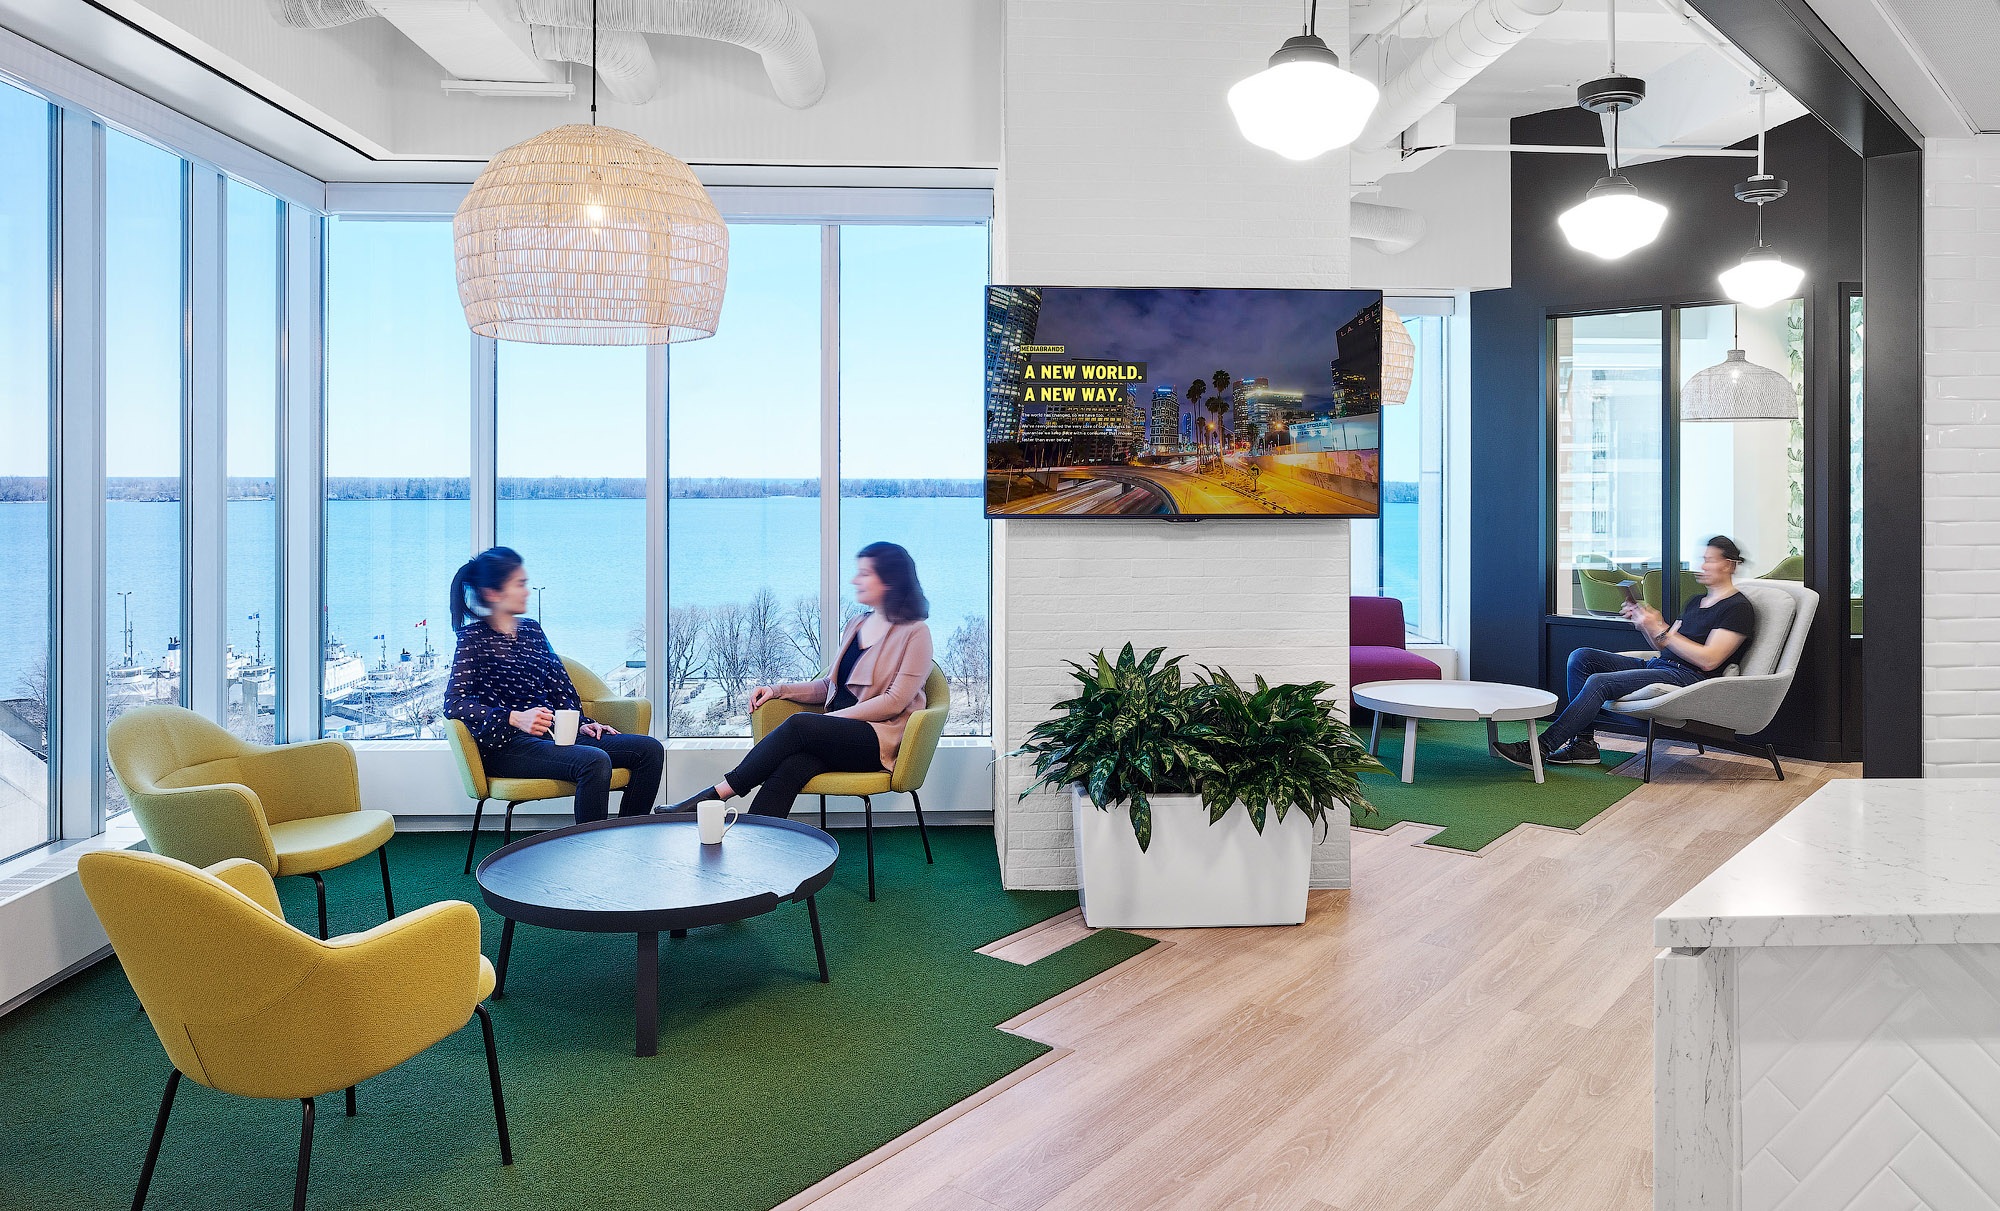 Mediabrands alcove in front of window with green turf, yellow armchairs, and domed bamboo light fixture